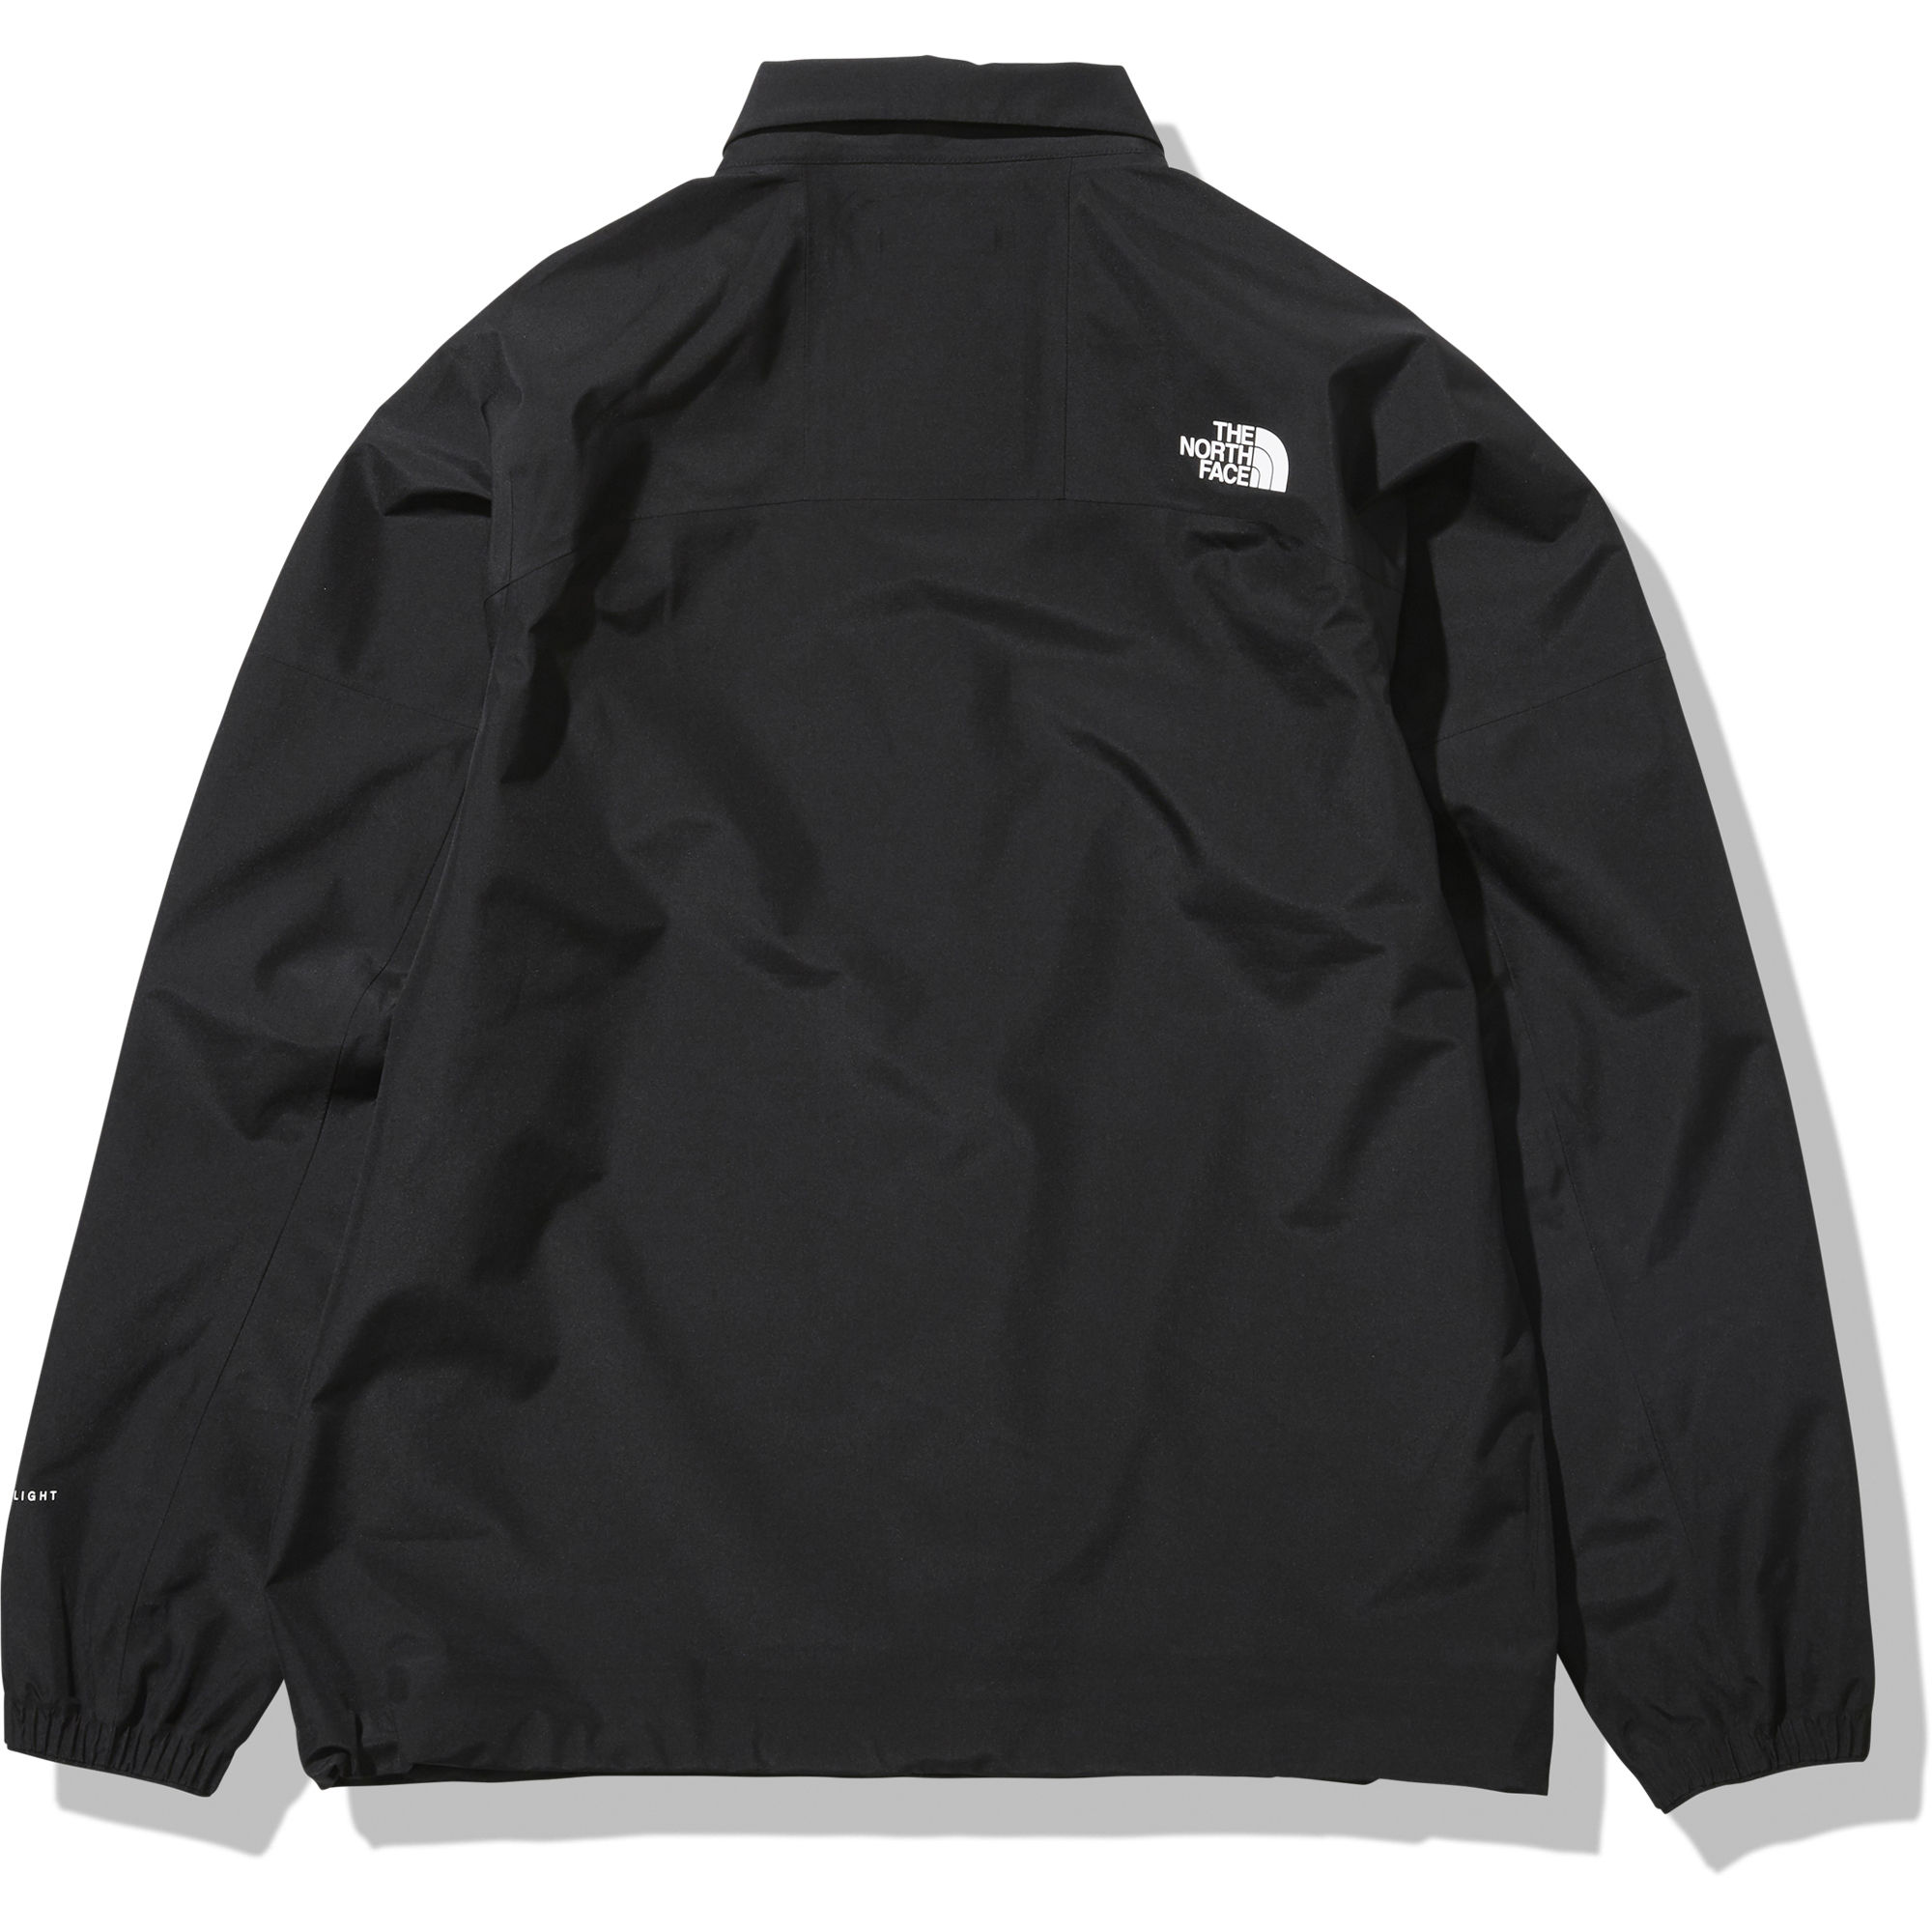 FL COACH JACKET